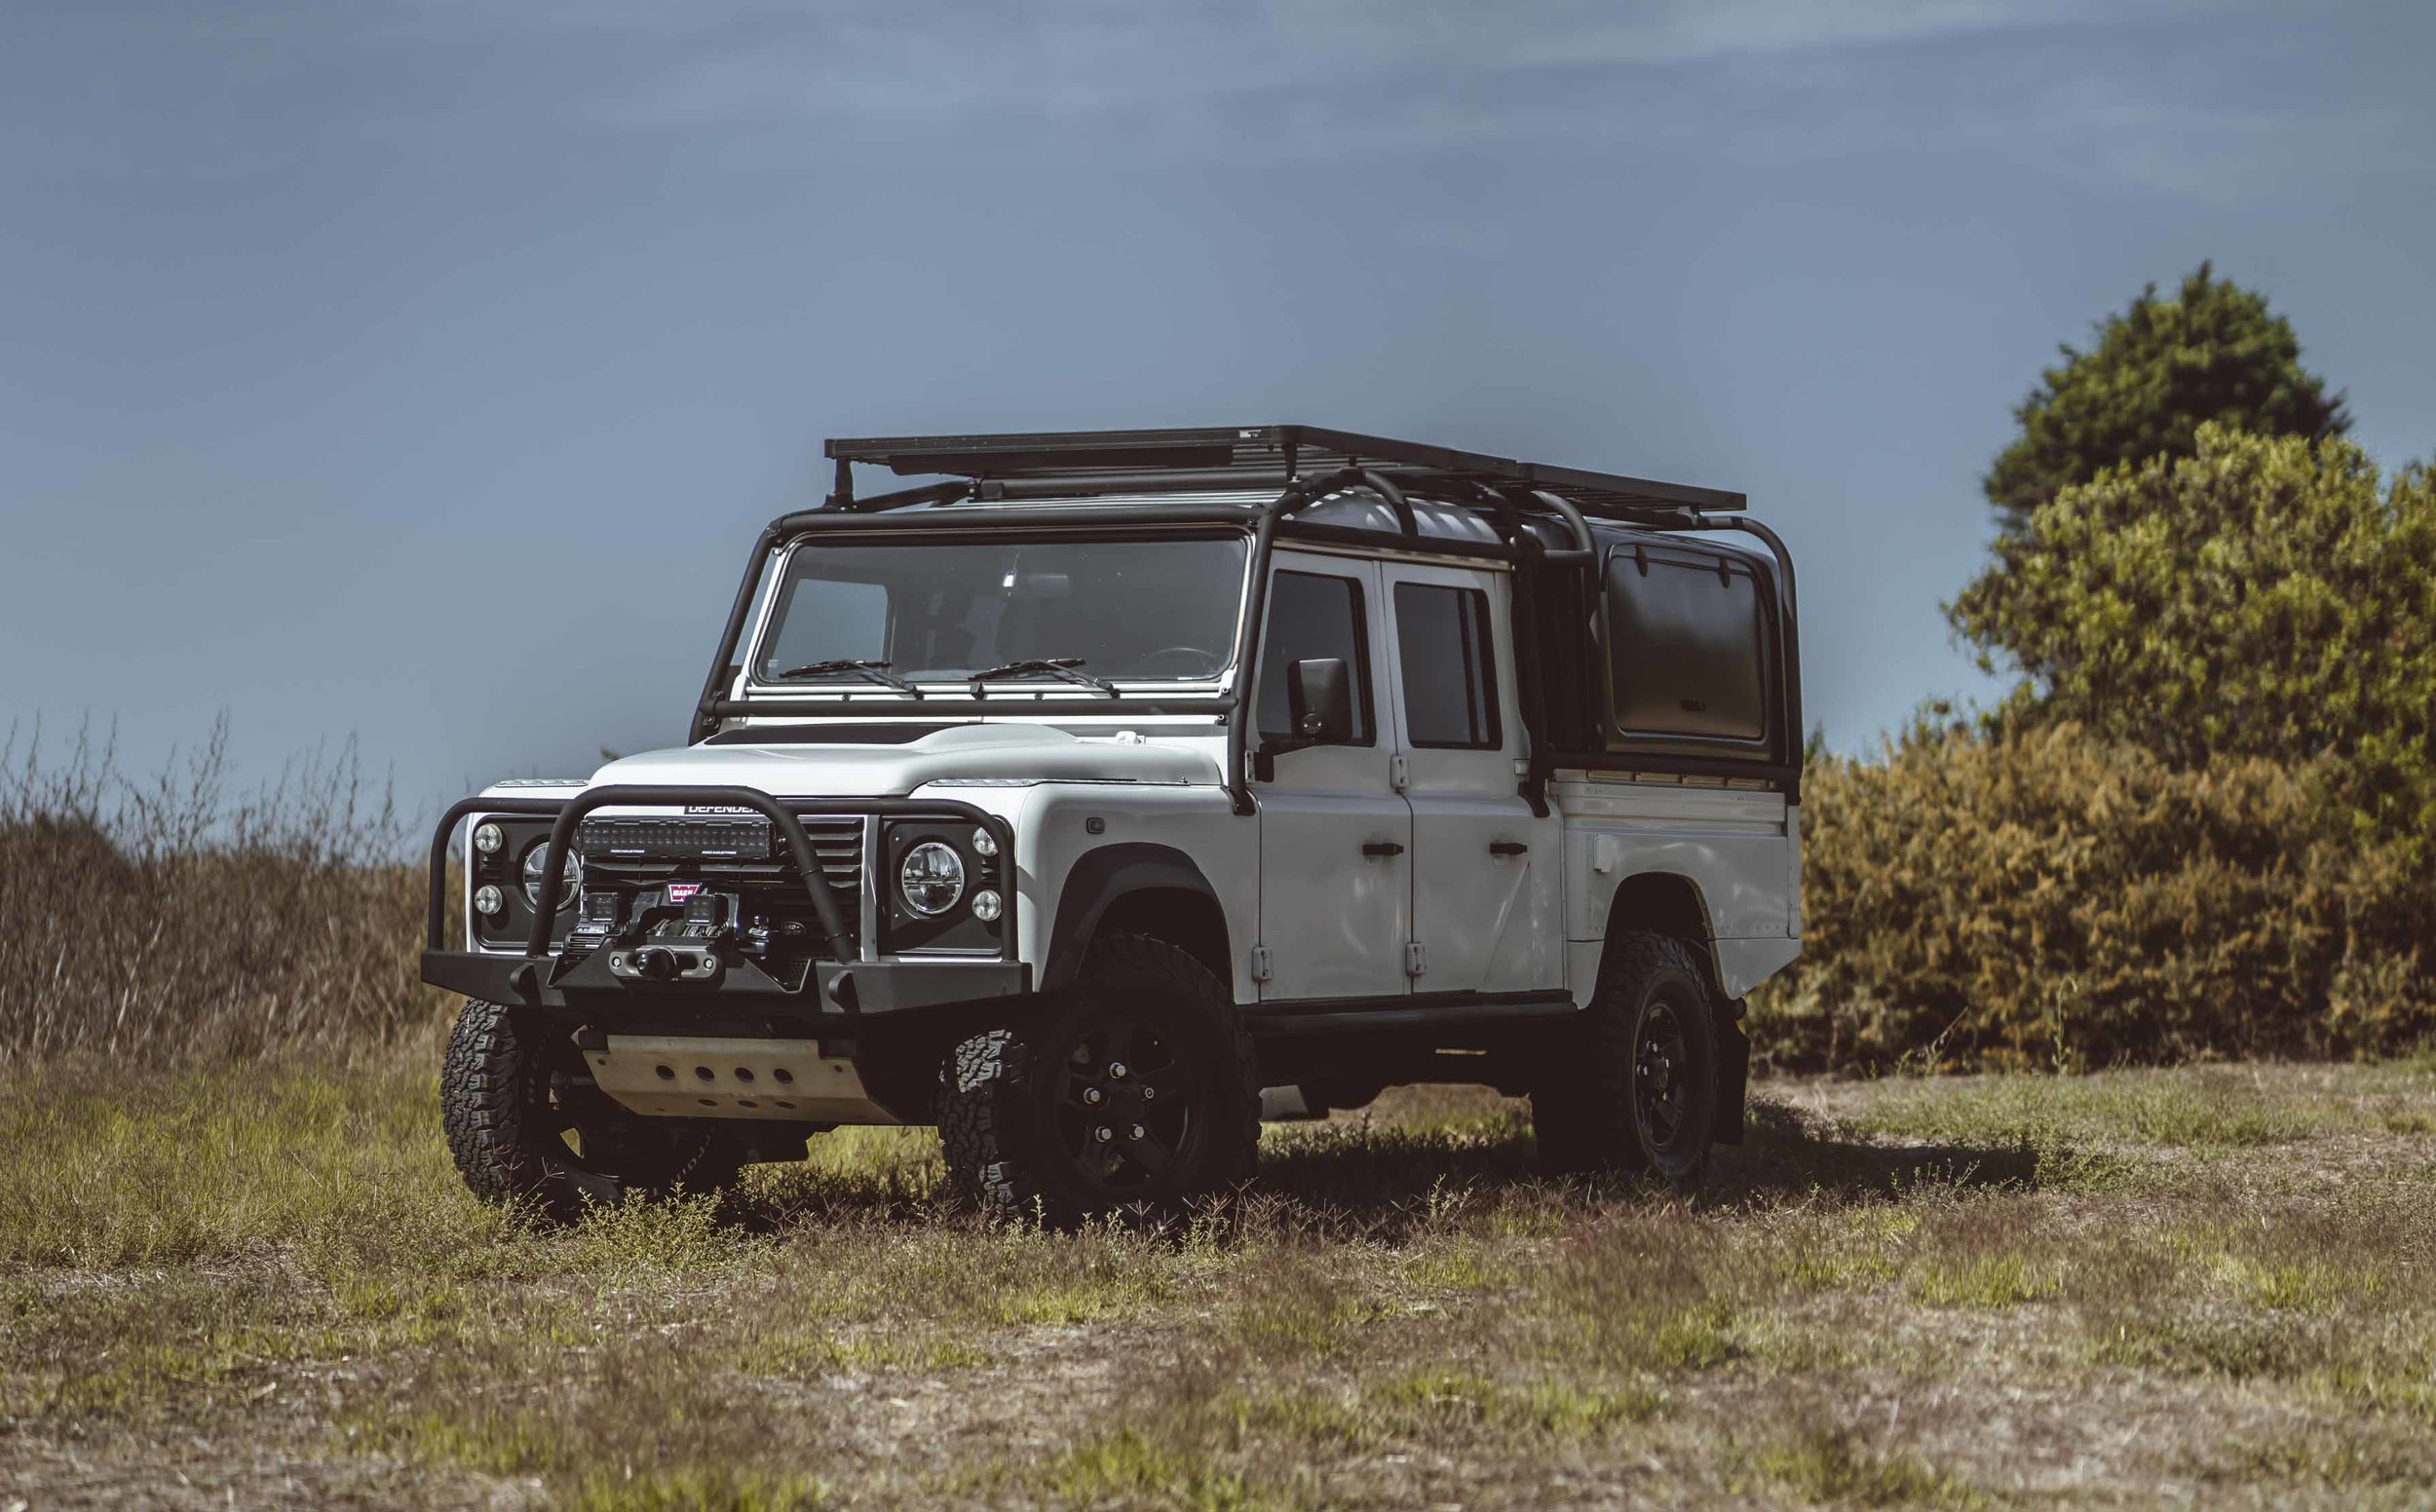 Land_Rover_130_Expedition_large_0006_Layer 34.jpg